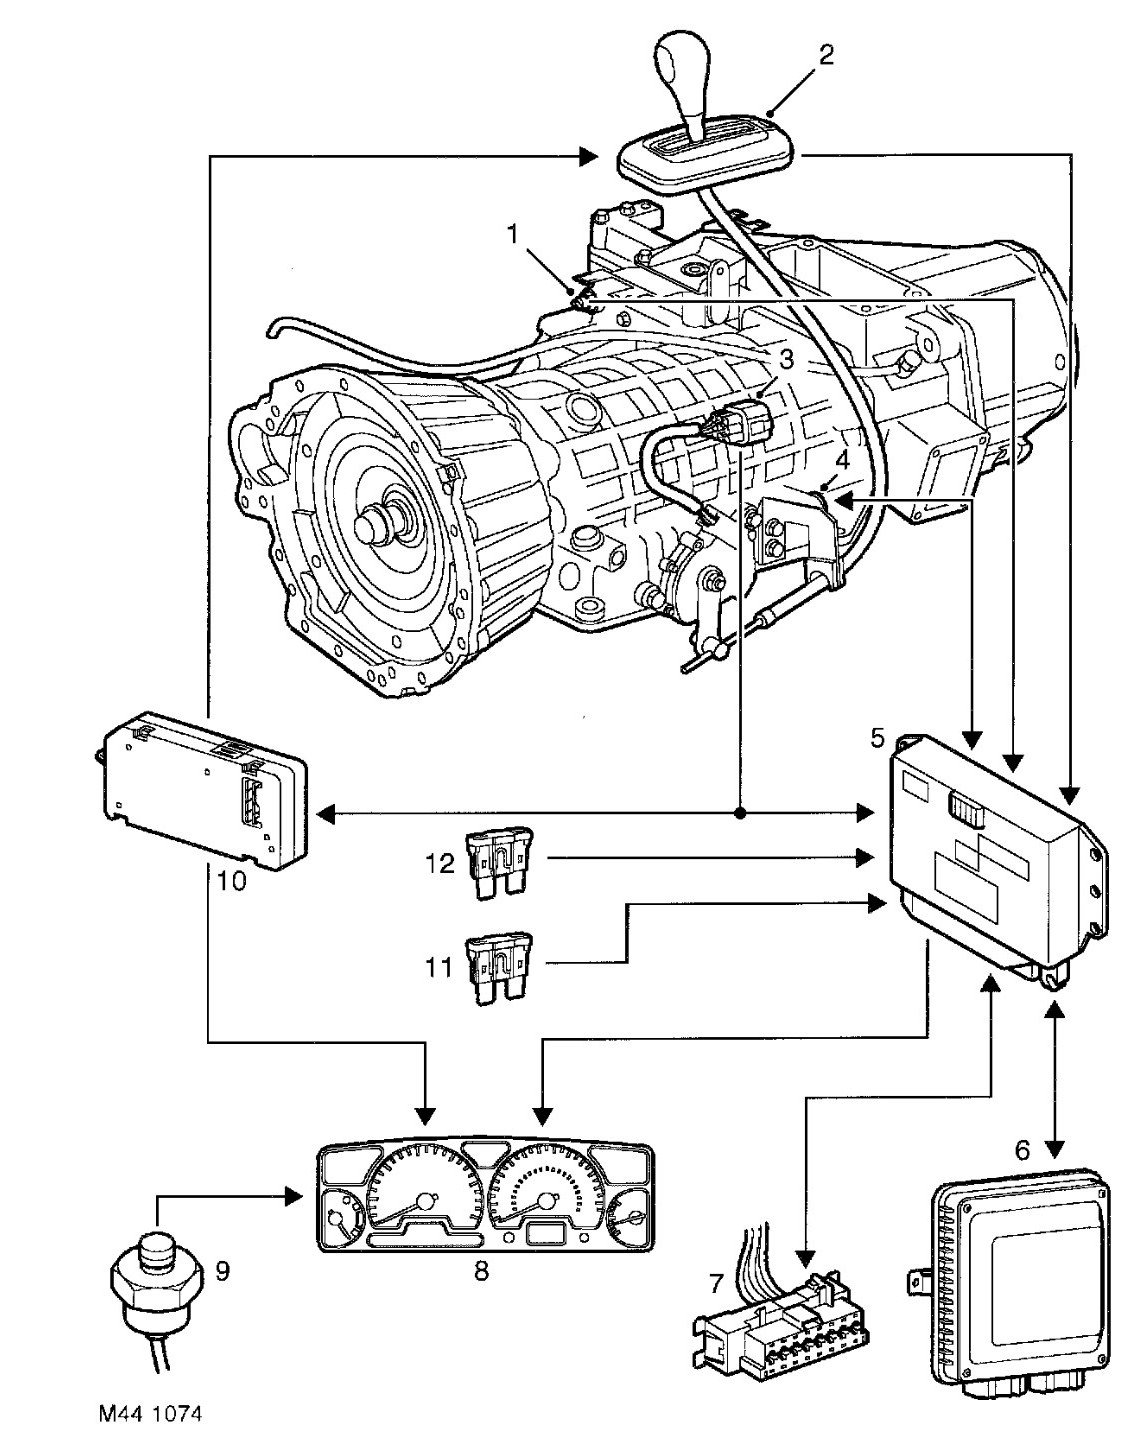 Where Does The Vehicle Speed Sensor Goes A 2000 Land Rover